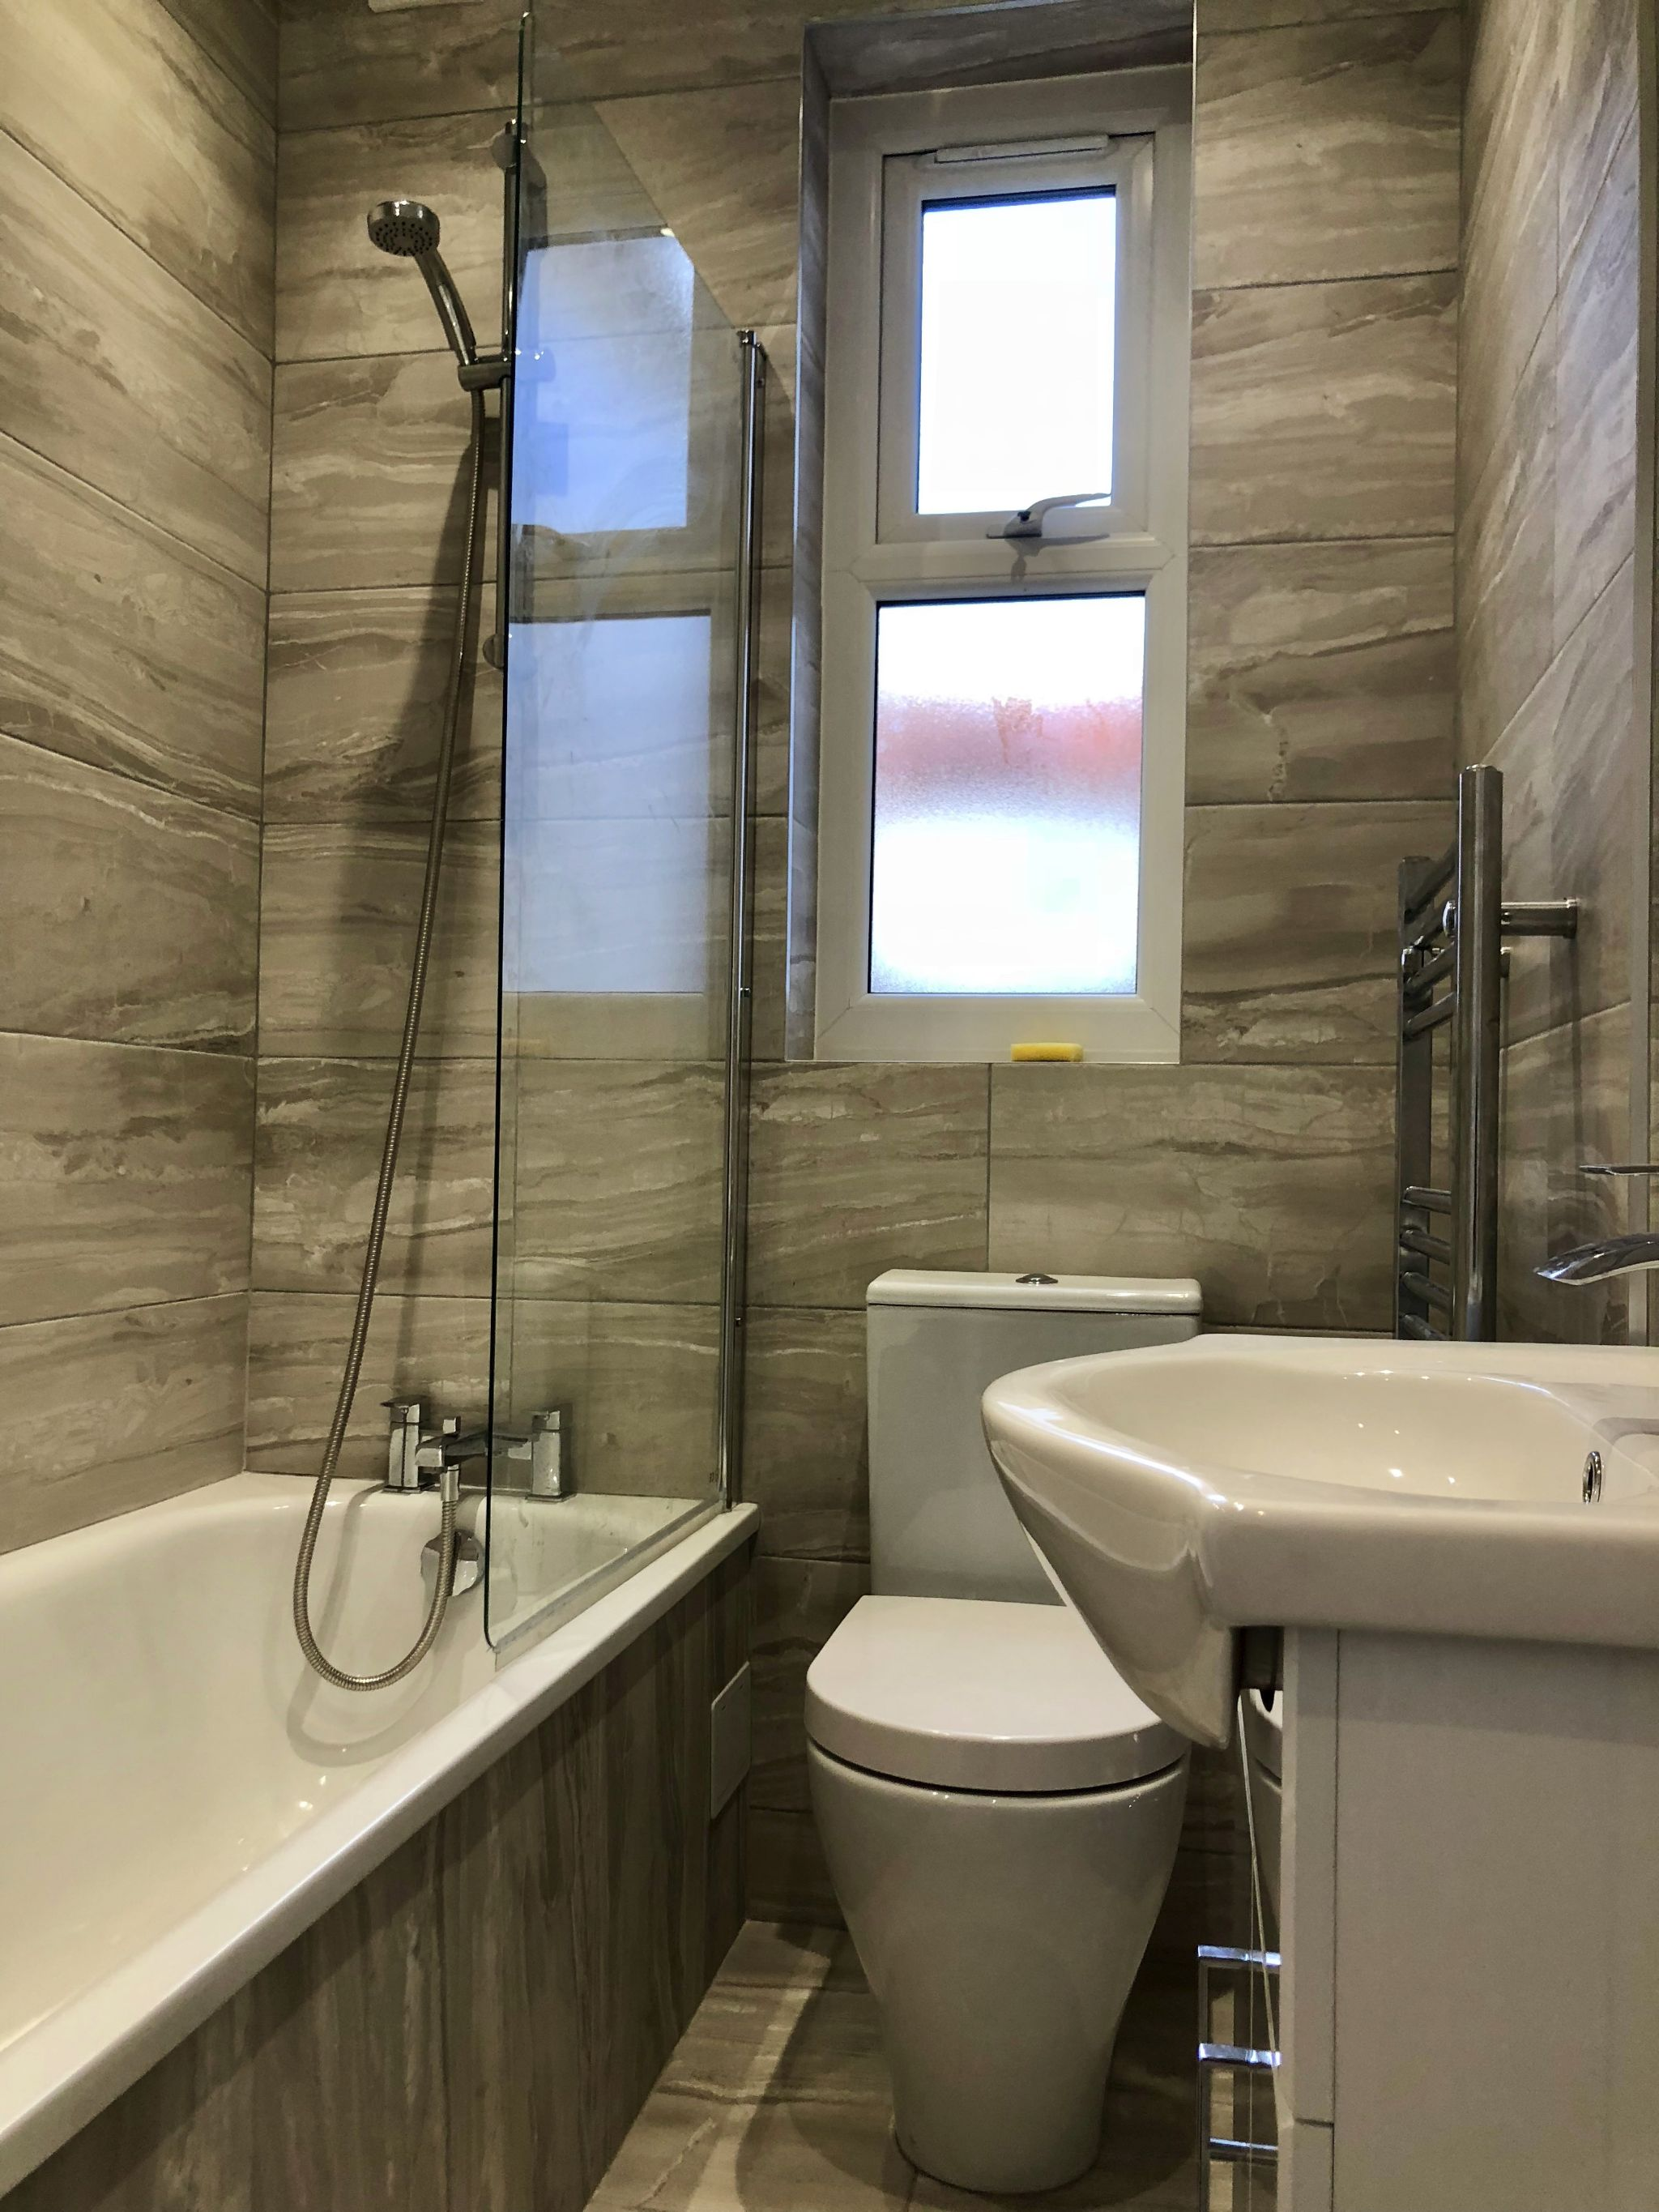 3 bedroom flat flat/apartment To Let in London - 3 PIECE BATHROOM SUITE